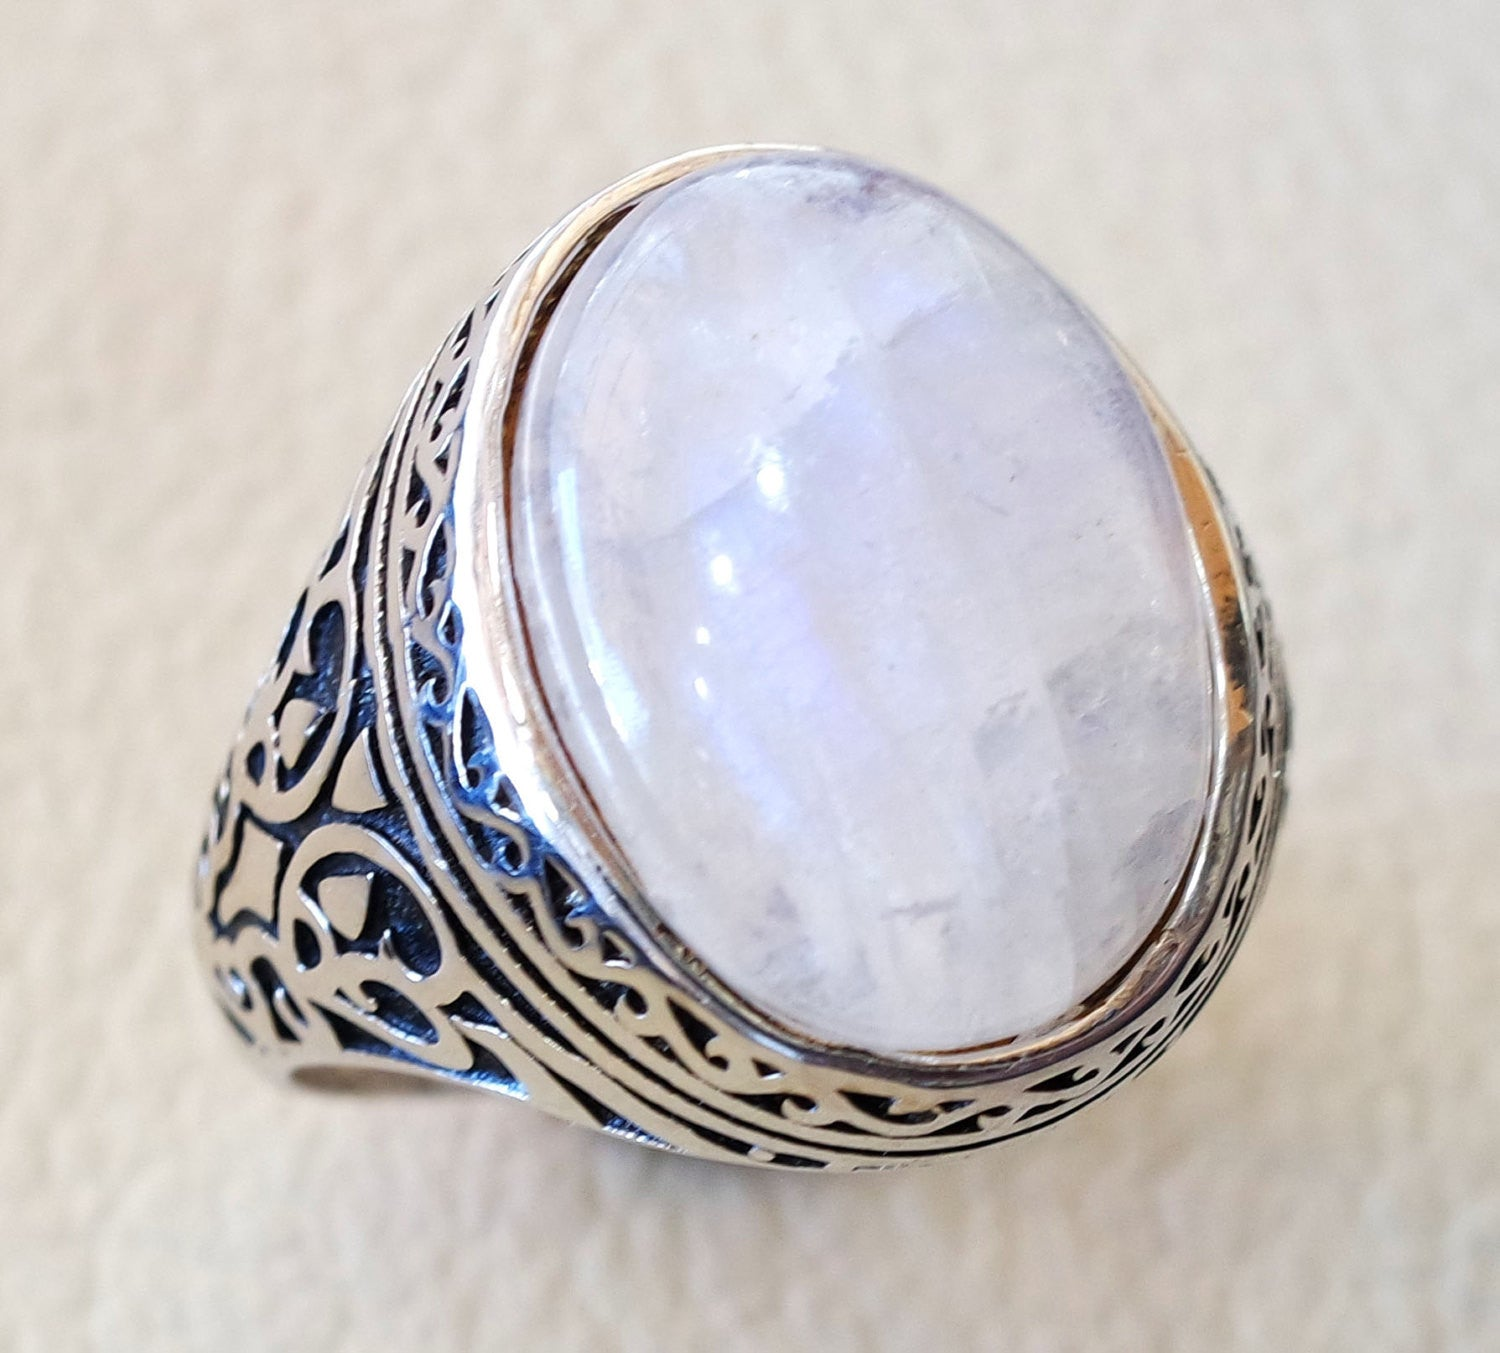 moonstone natural stone durr al najaf men ring jewelry sterling silver 925 stunning genuine gem ottoman arabic style jewelry all sizes